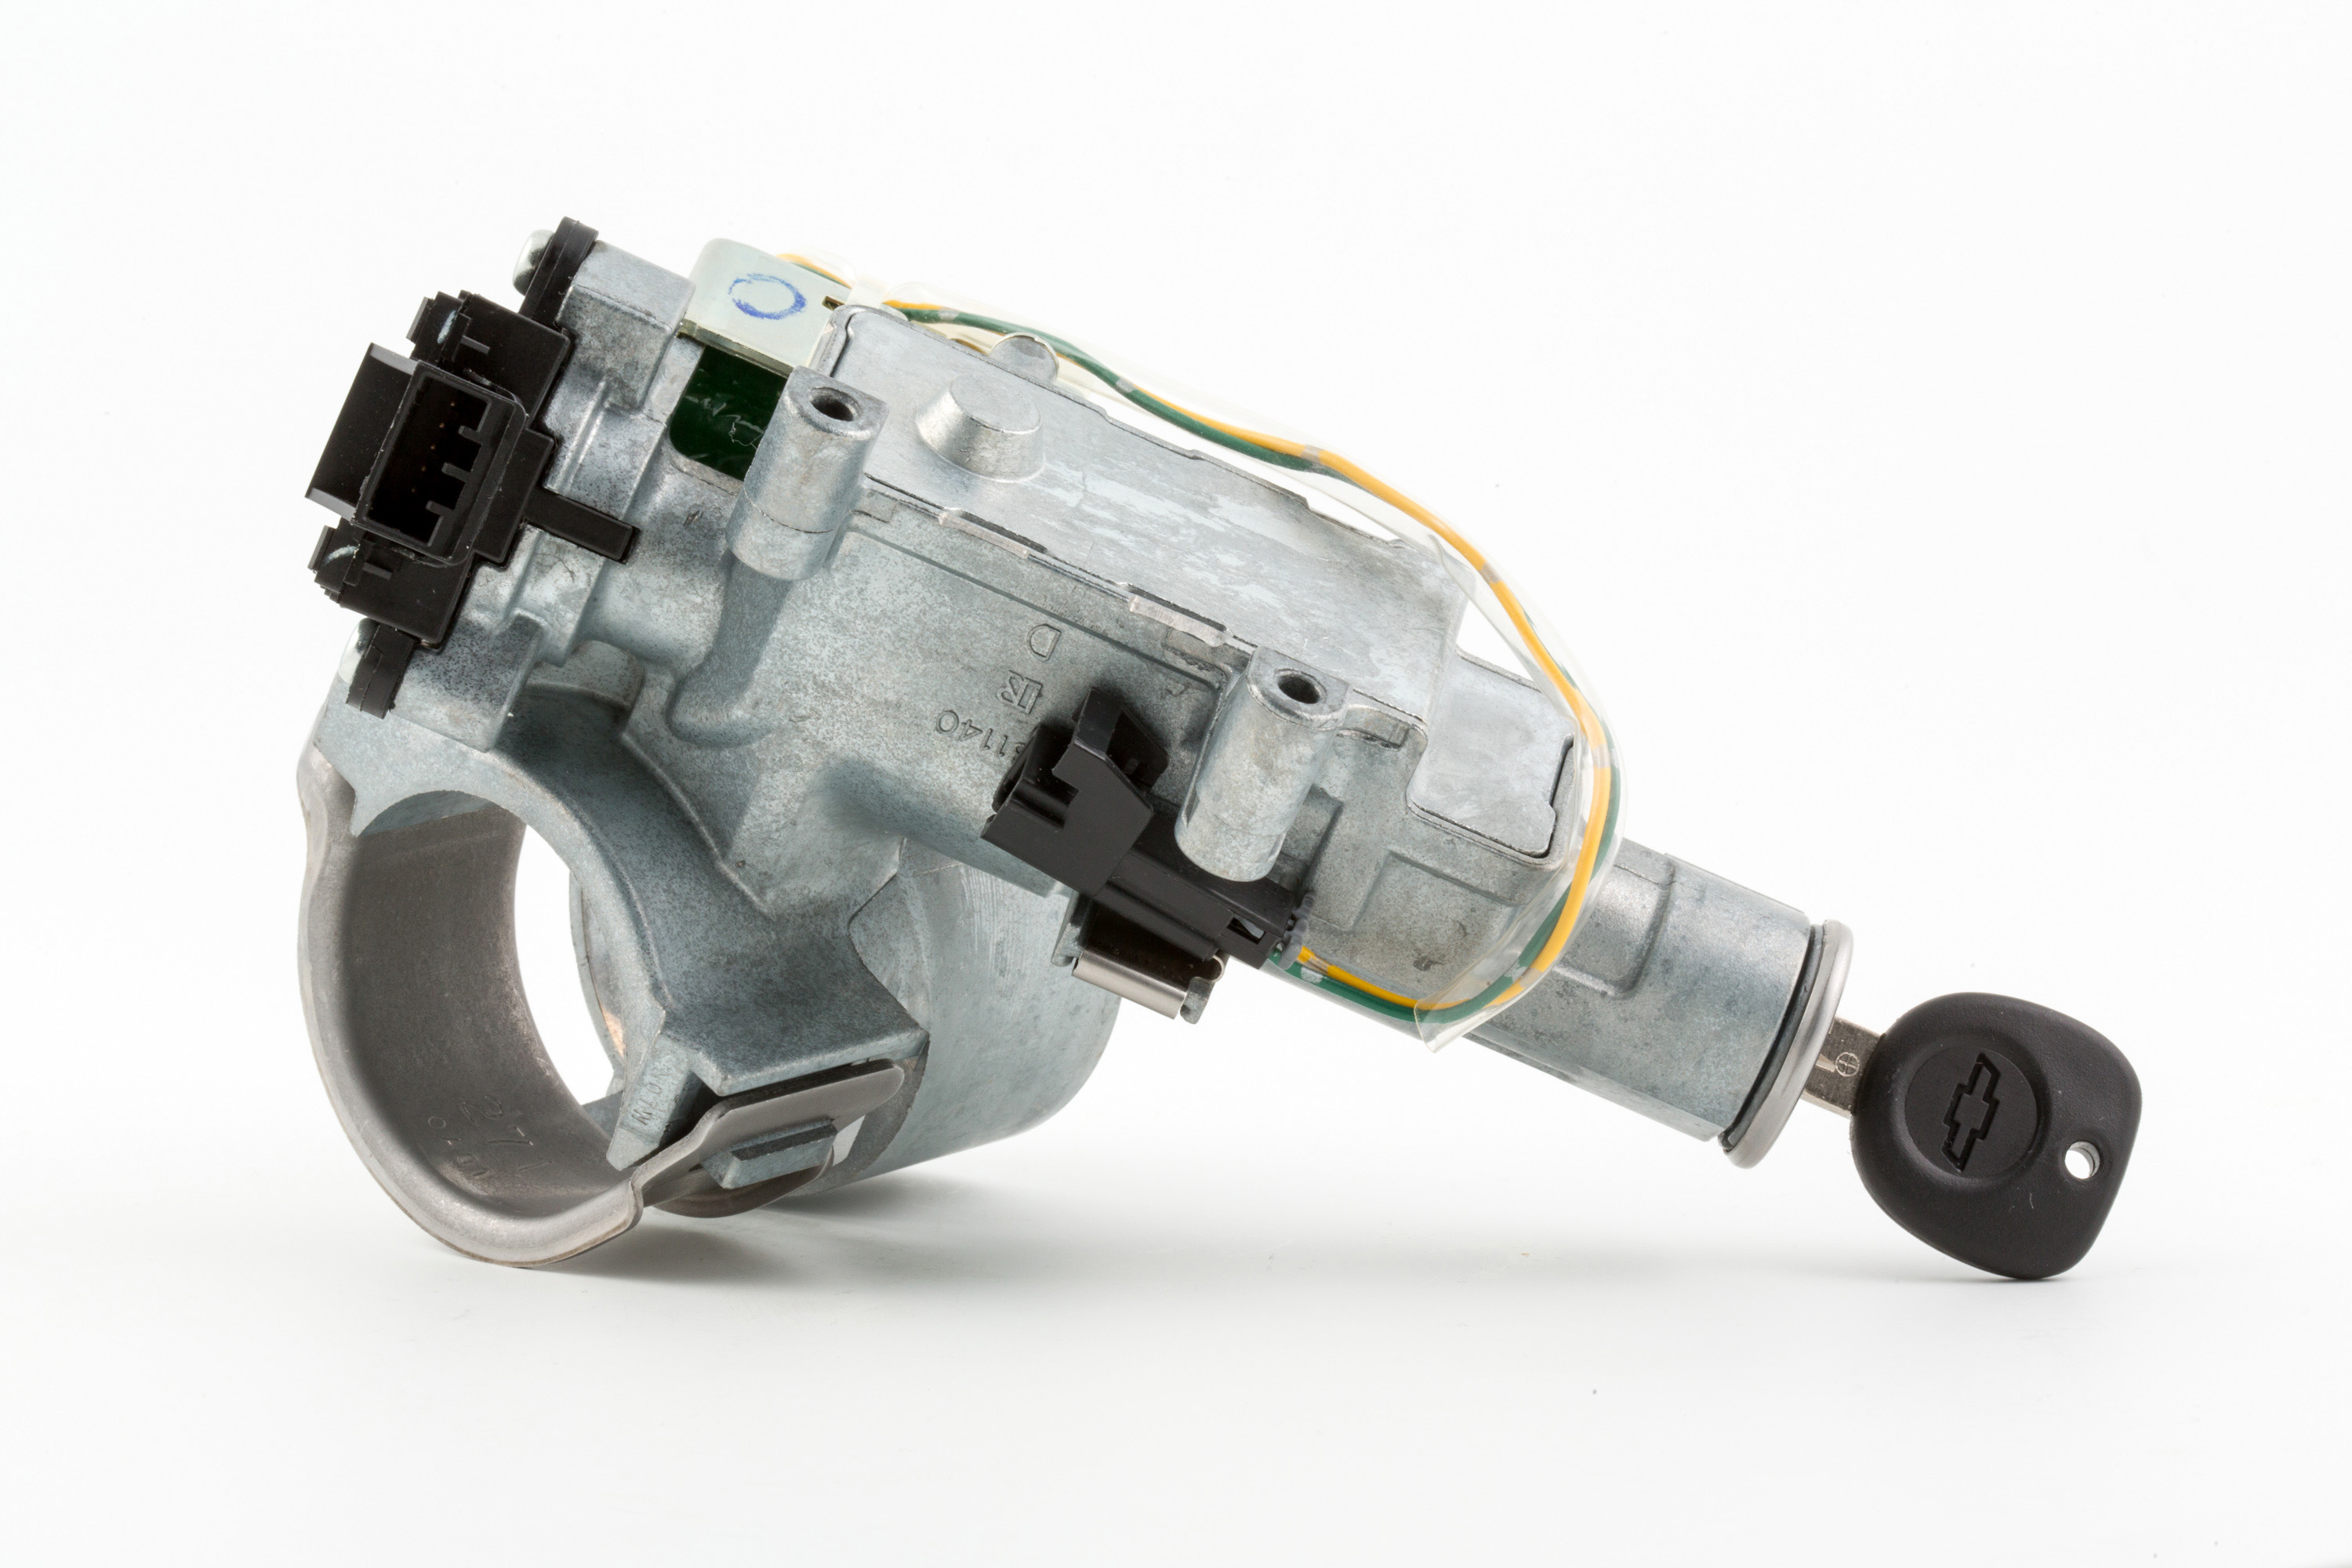 gm ignition switch saga turning point